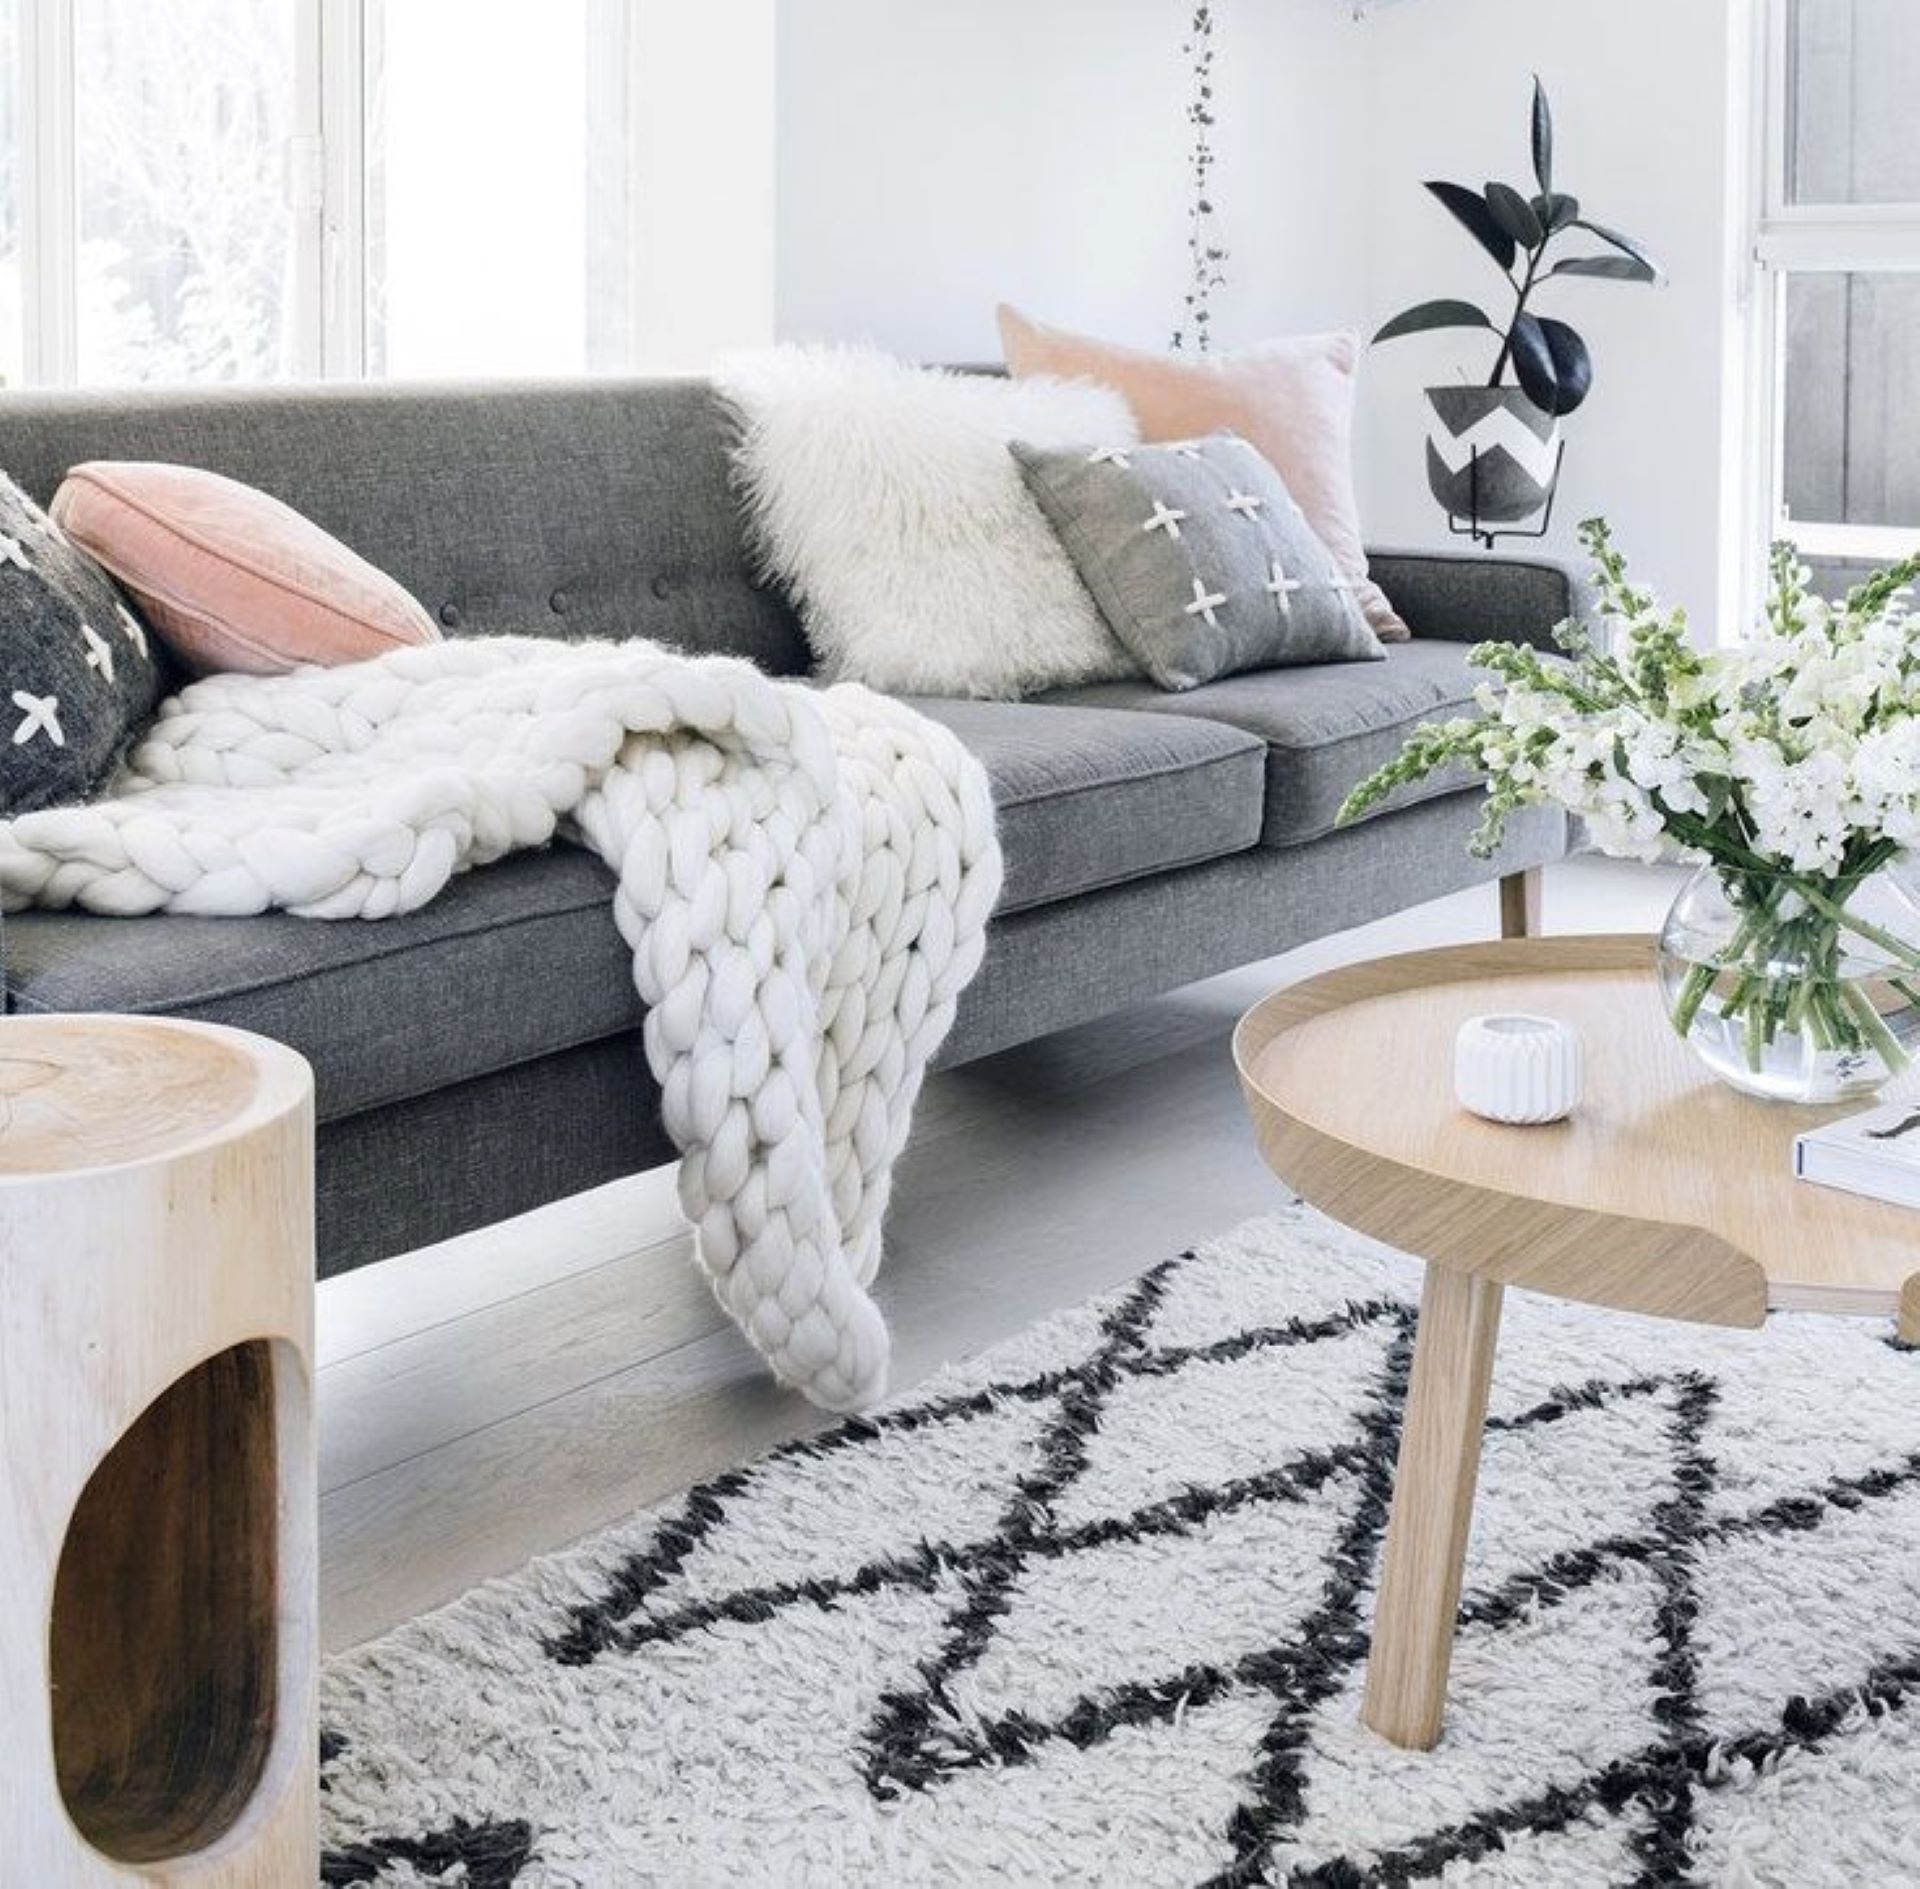 Sheepskin throw and Nordic coarse wool knitted blanket textures as Scandinavian decor